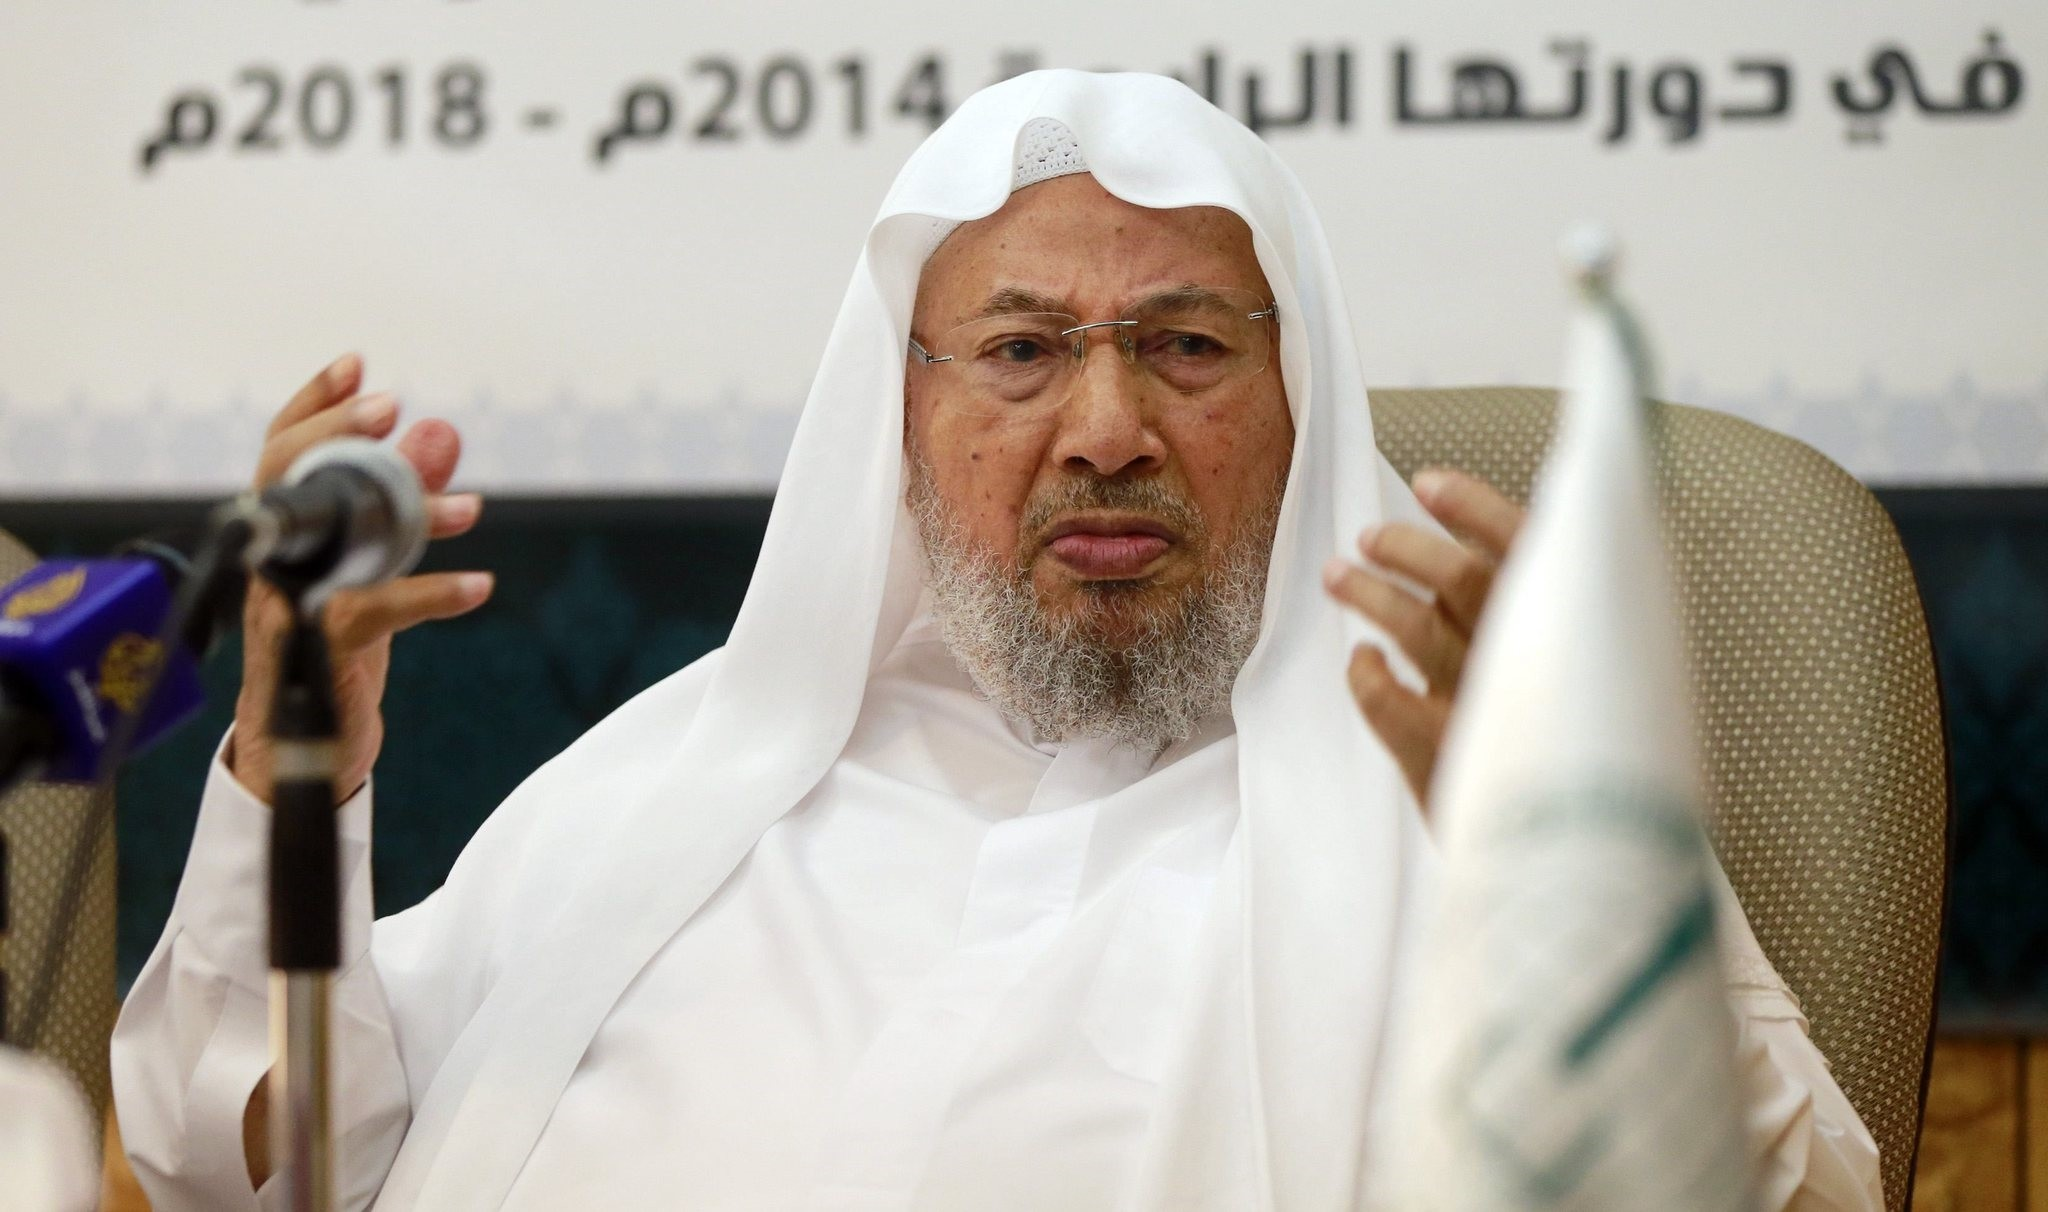 Chairman of the International Union of Muslim Scholars Youssef al-Qaradawi (R) speaks during a news conference in Doha June 23, 2014. (Reuters Photo)